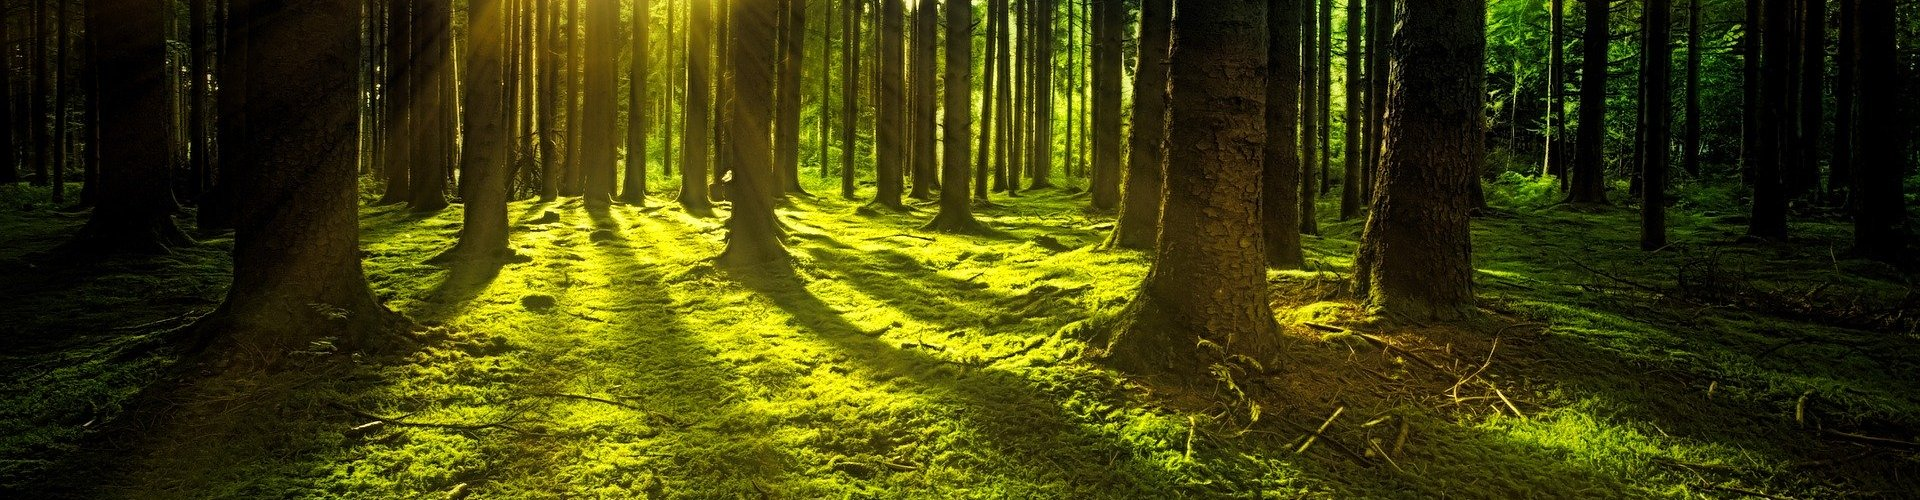 light shining through tree trunks in forest with moss floor